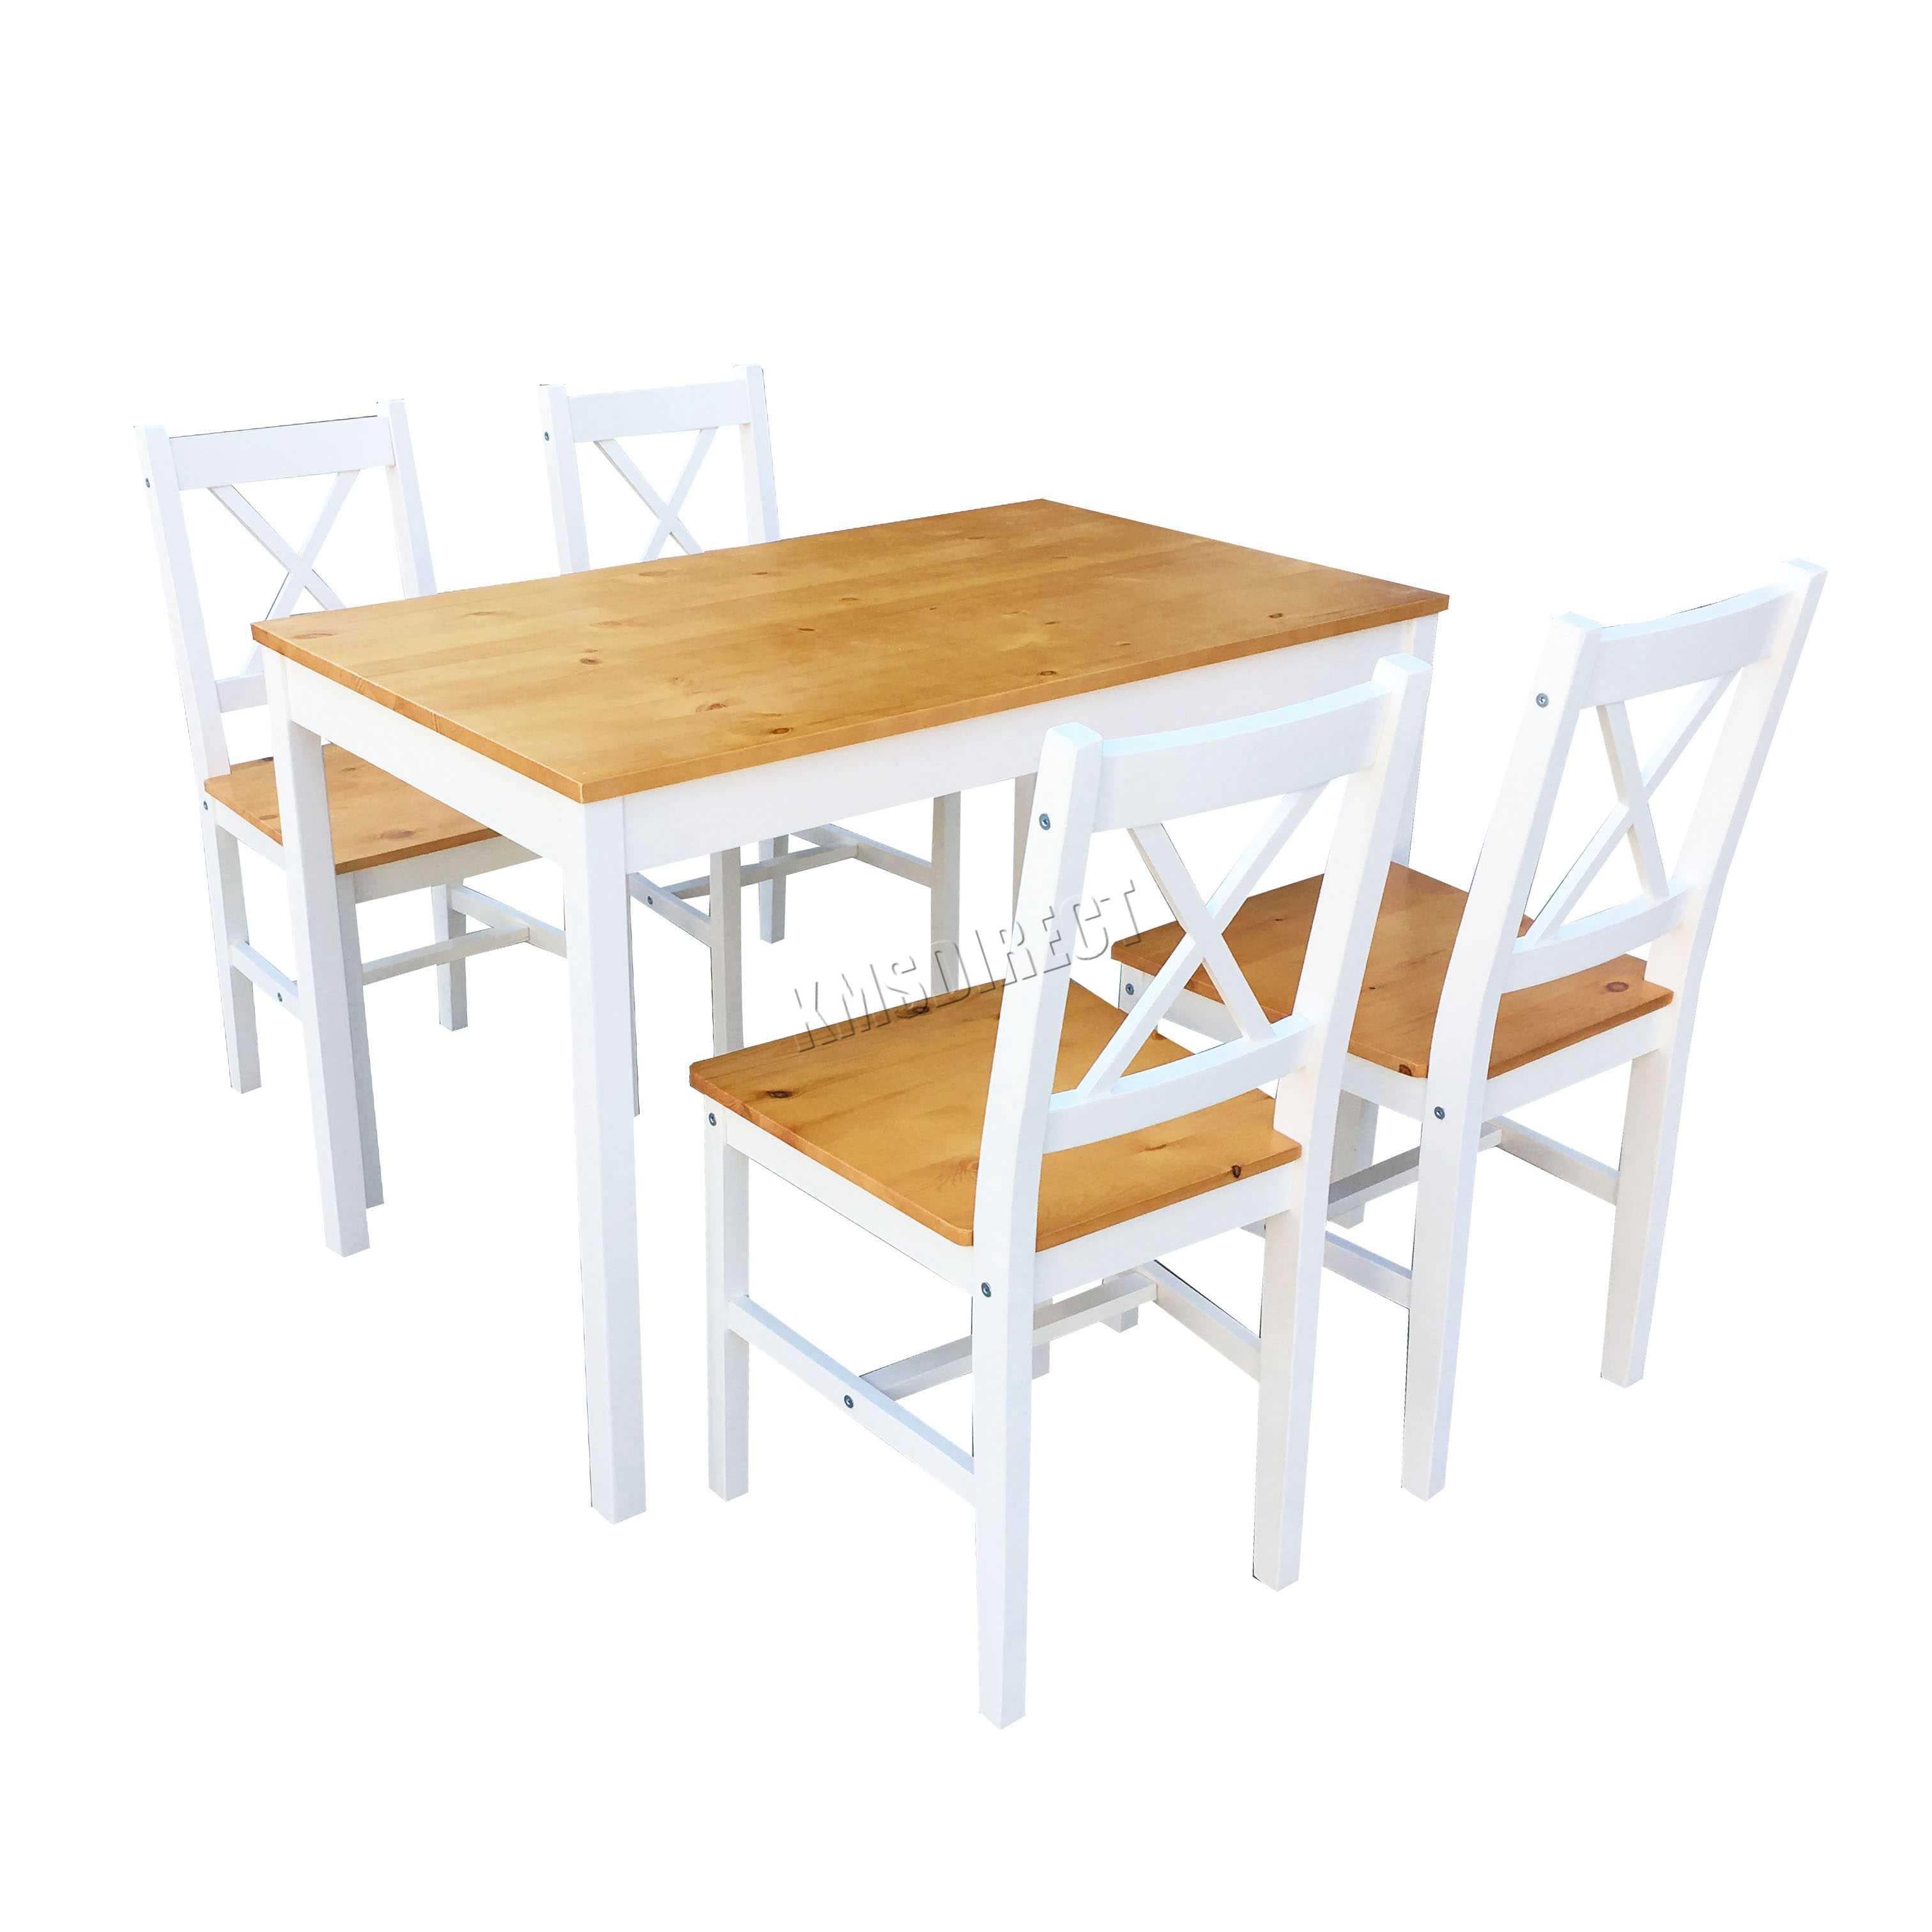 Kitchen Wooden Dining Table Chairs Collection With: WestWood Quality Solid Wooden Dining Table And 4 Chairs